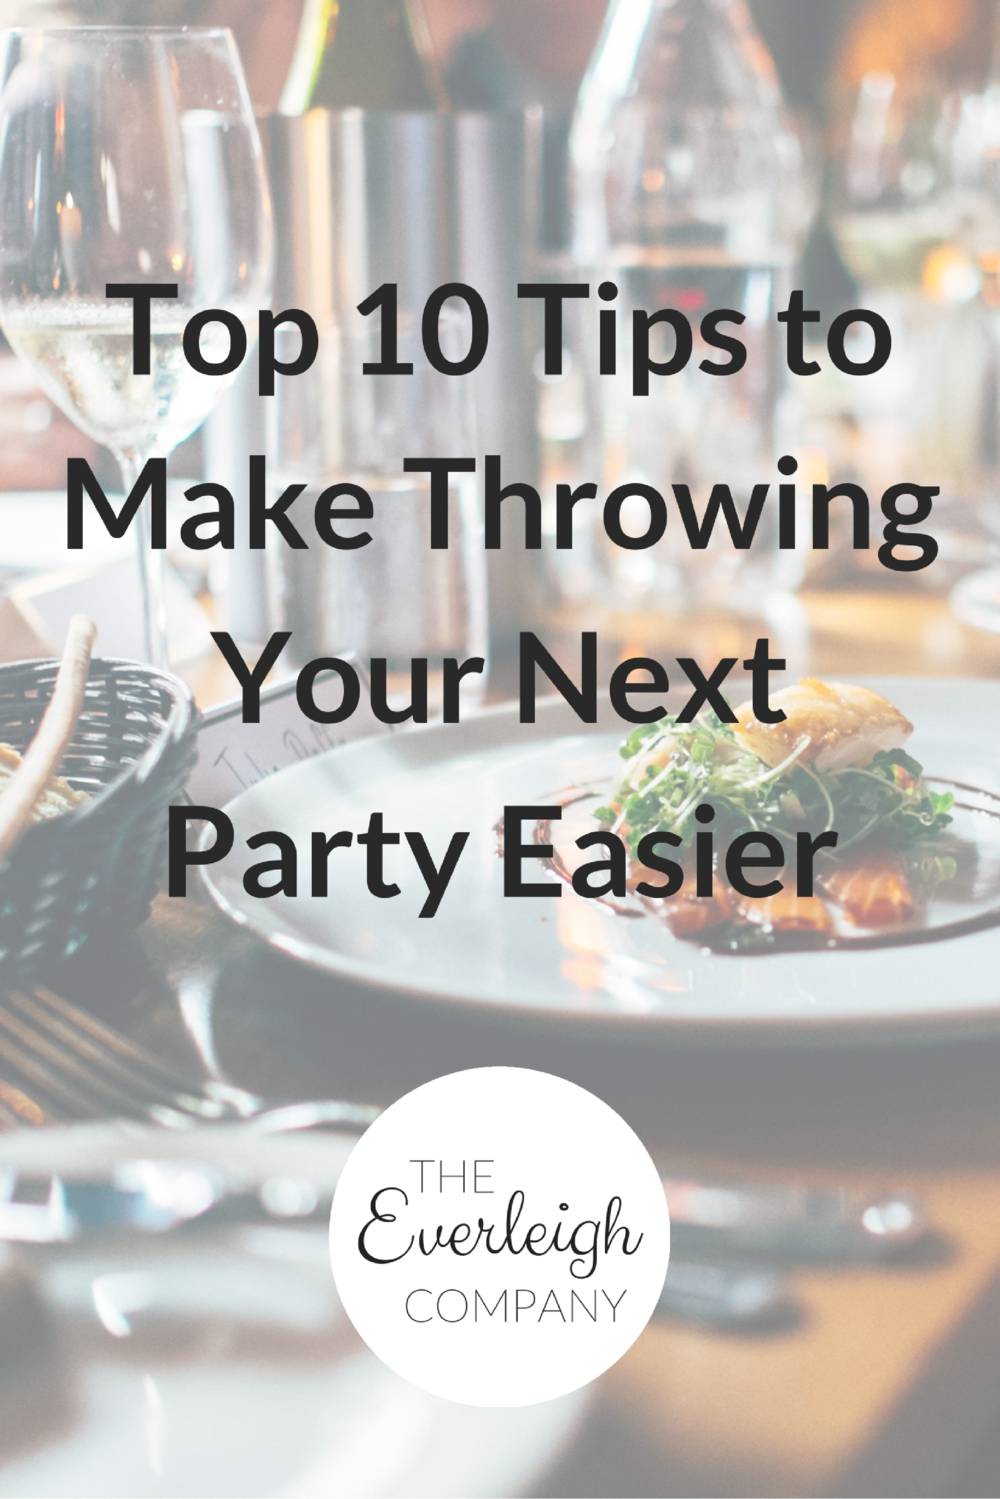 Top 10 tips to make throwing your next party easier Everleigh Company